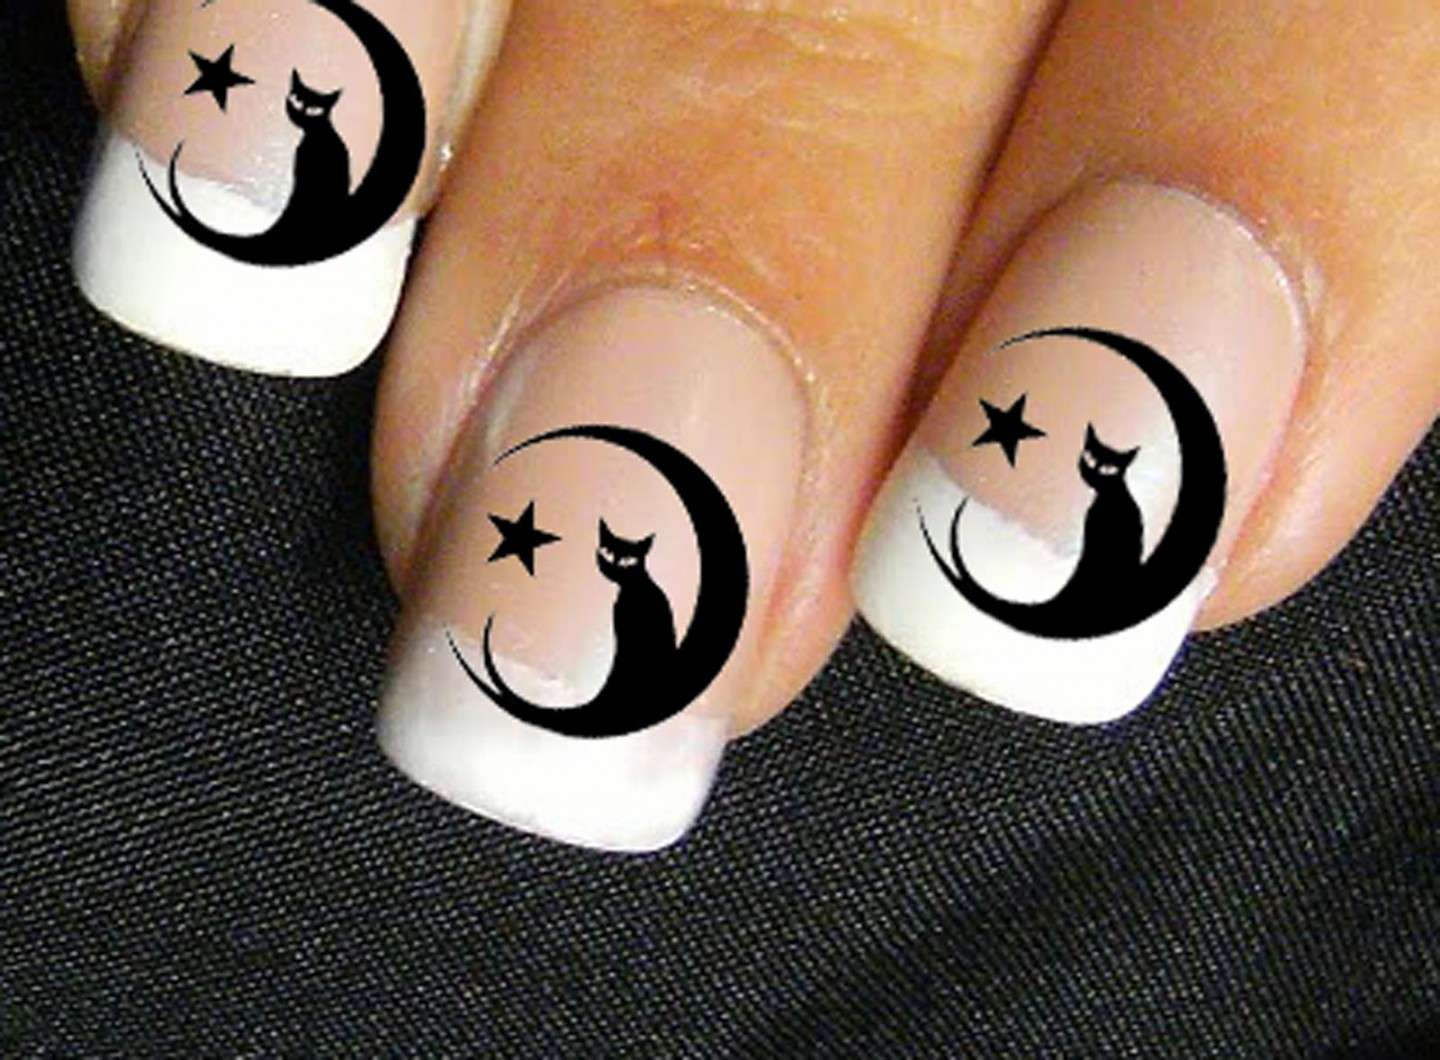 French manicure con gatto e luna